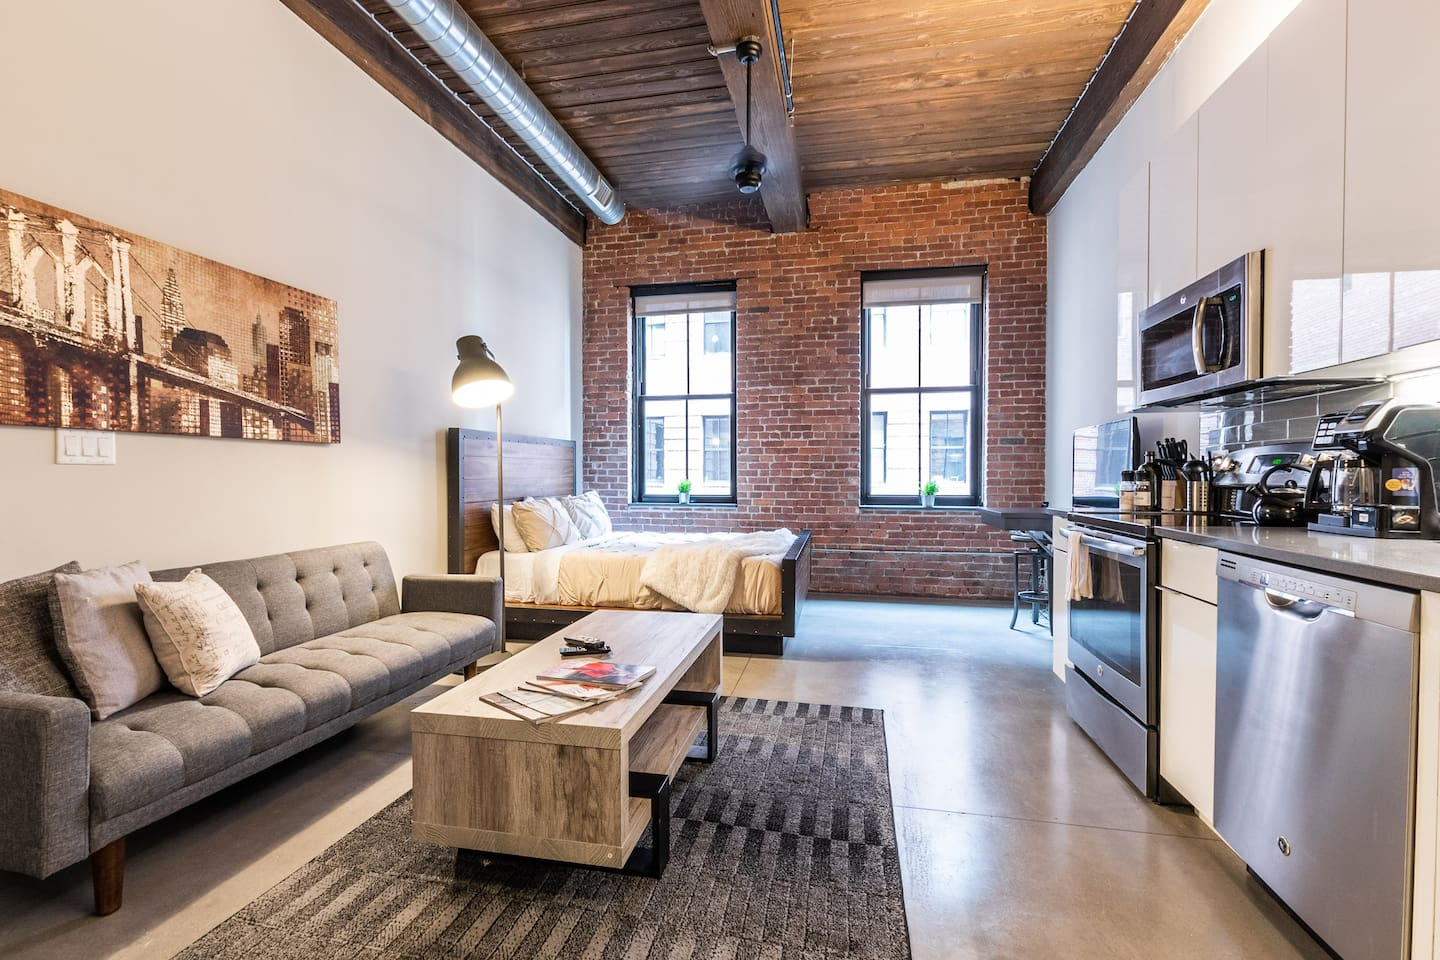 Industrial style studio apartment perfect for any short/long term stays.  Great location, quiet neighborhood, amazing amenities!